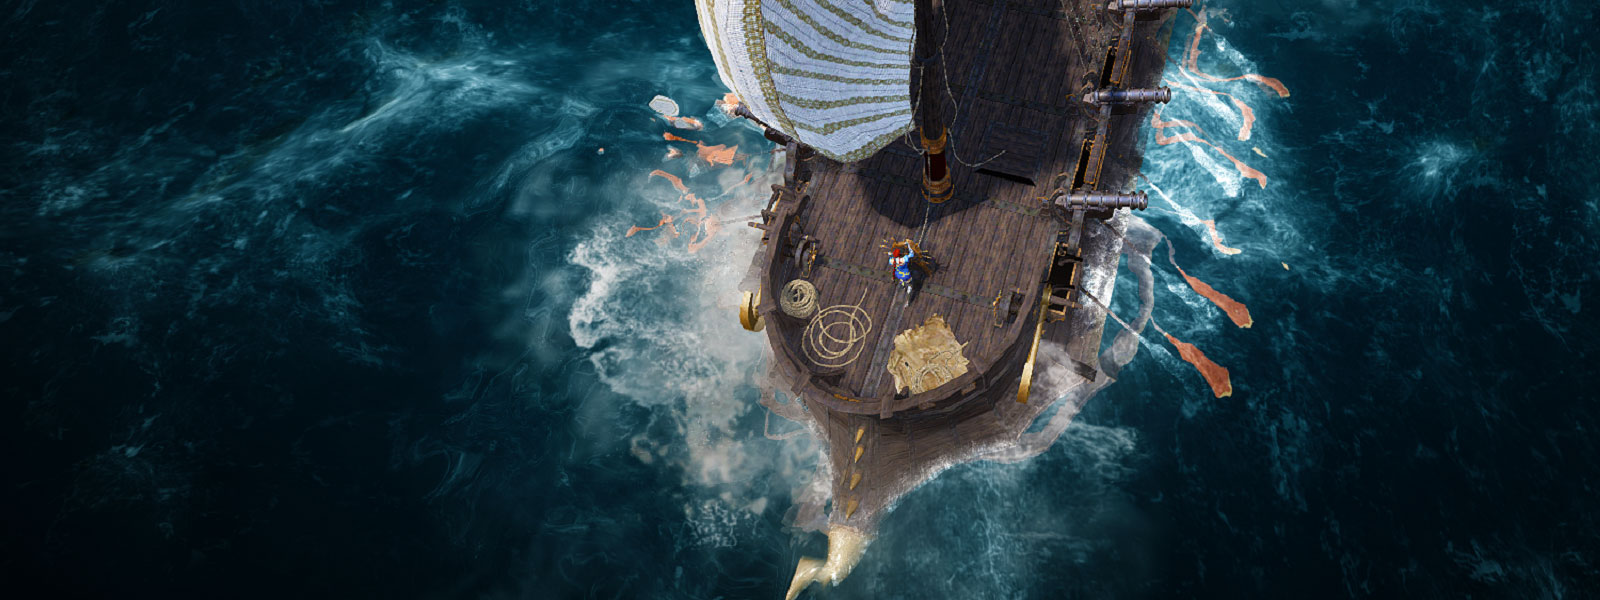 aerial view of ship exploring the huge open world